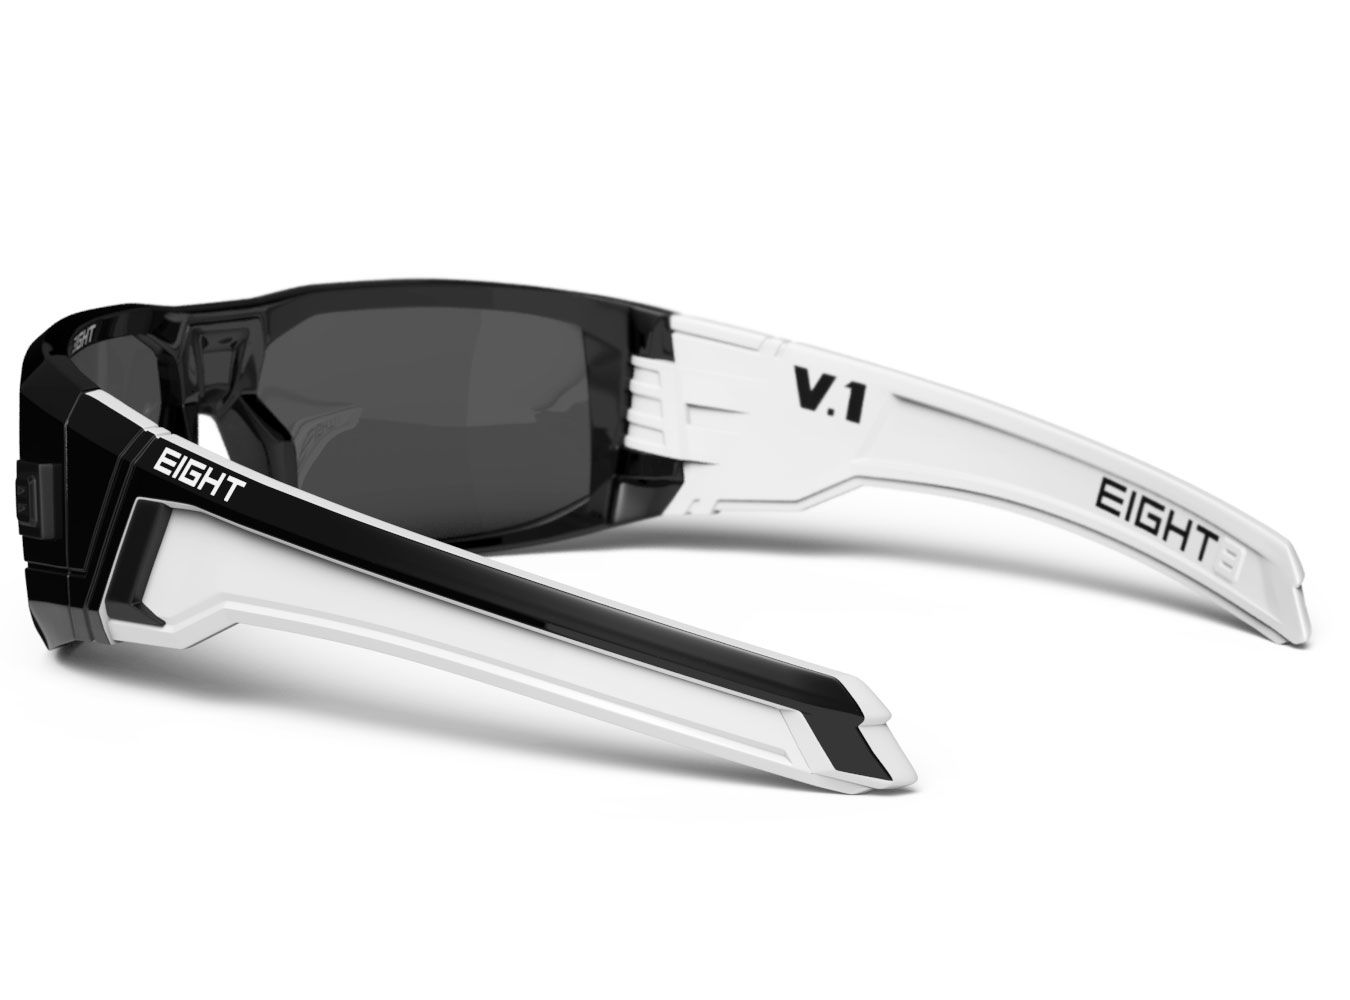 f133644f77 Glossy Black White V.1 from EIGHT Eyewear WWW.IWEAR8.COM  8eyewear   sunglasses  shades  cool  mensfashion  fashion  style  summer  eight  sports   design